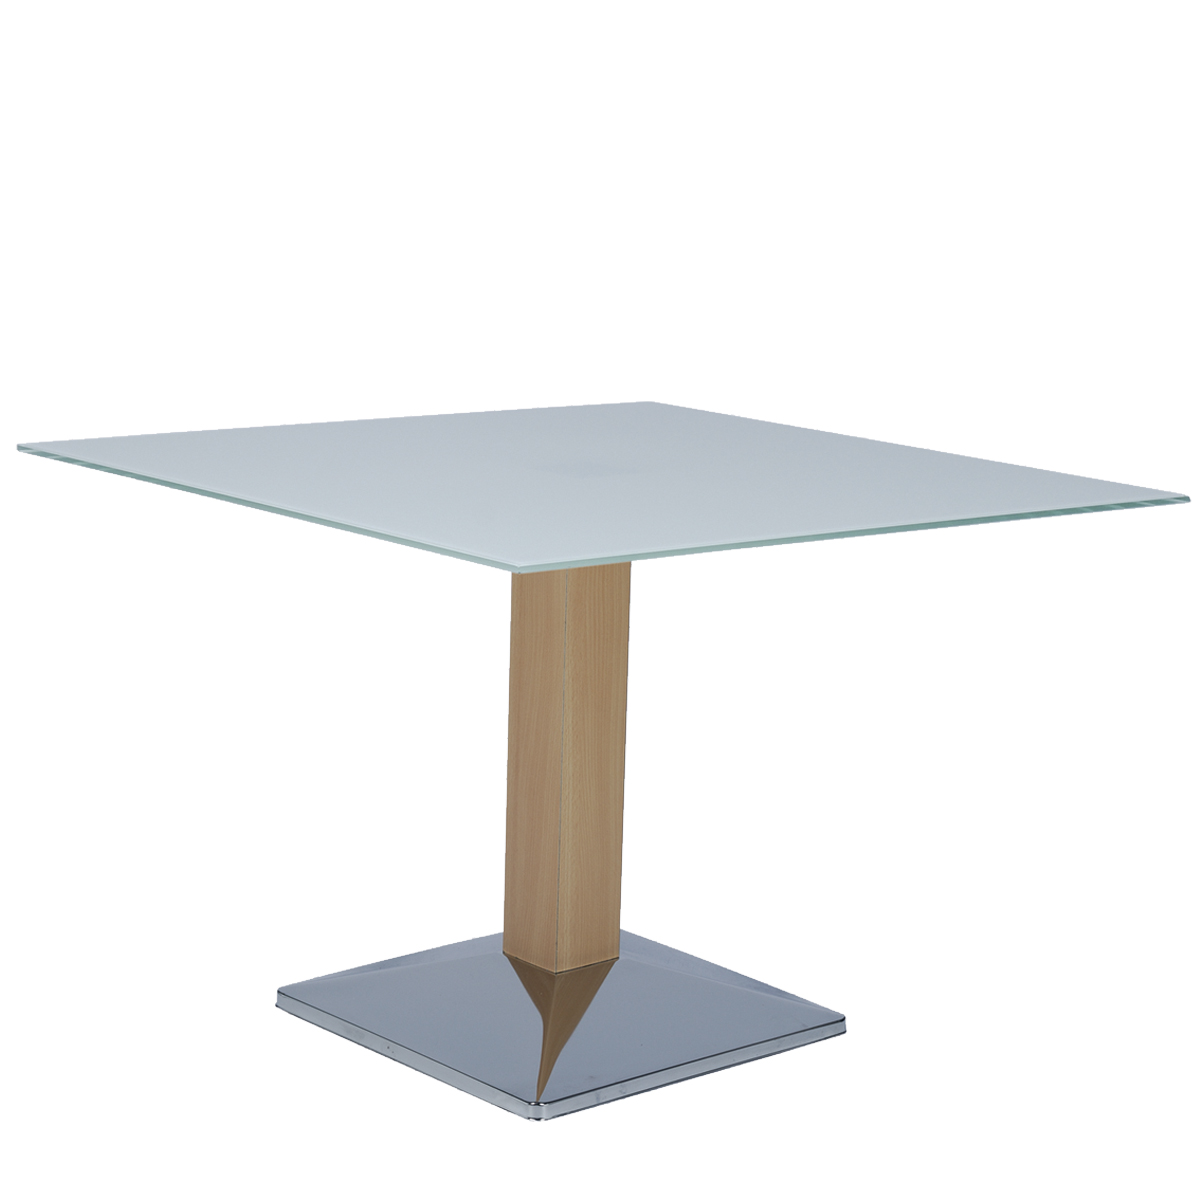 Table Basse Bois Et Verre Table Basse Spot Bois Verre Blanc Opaque Internation Moduling